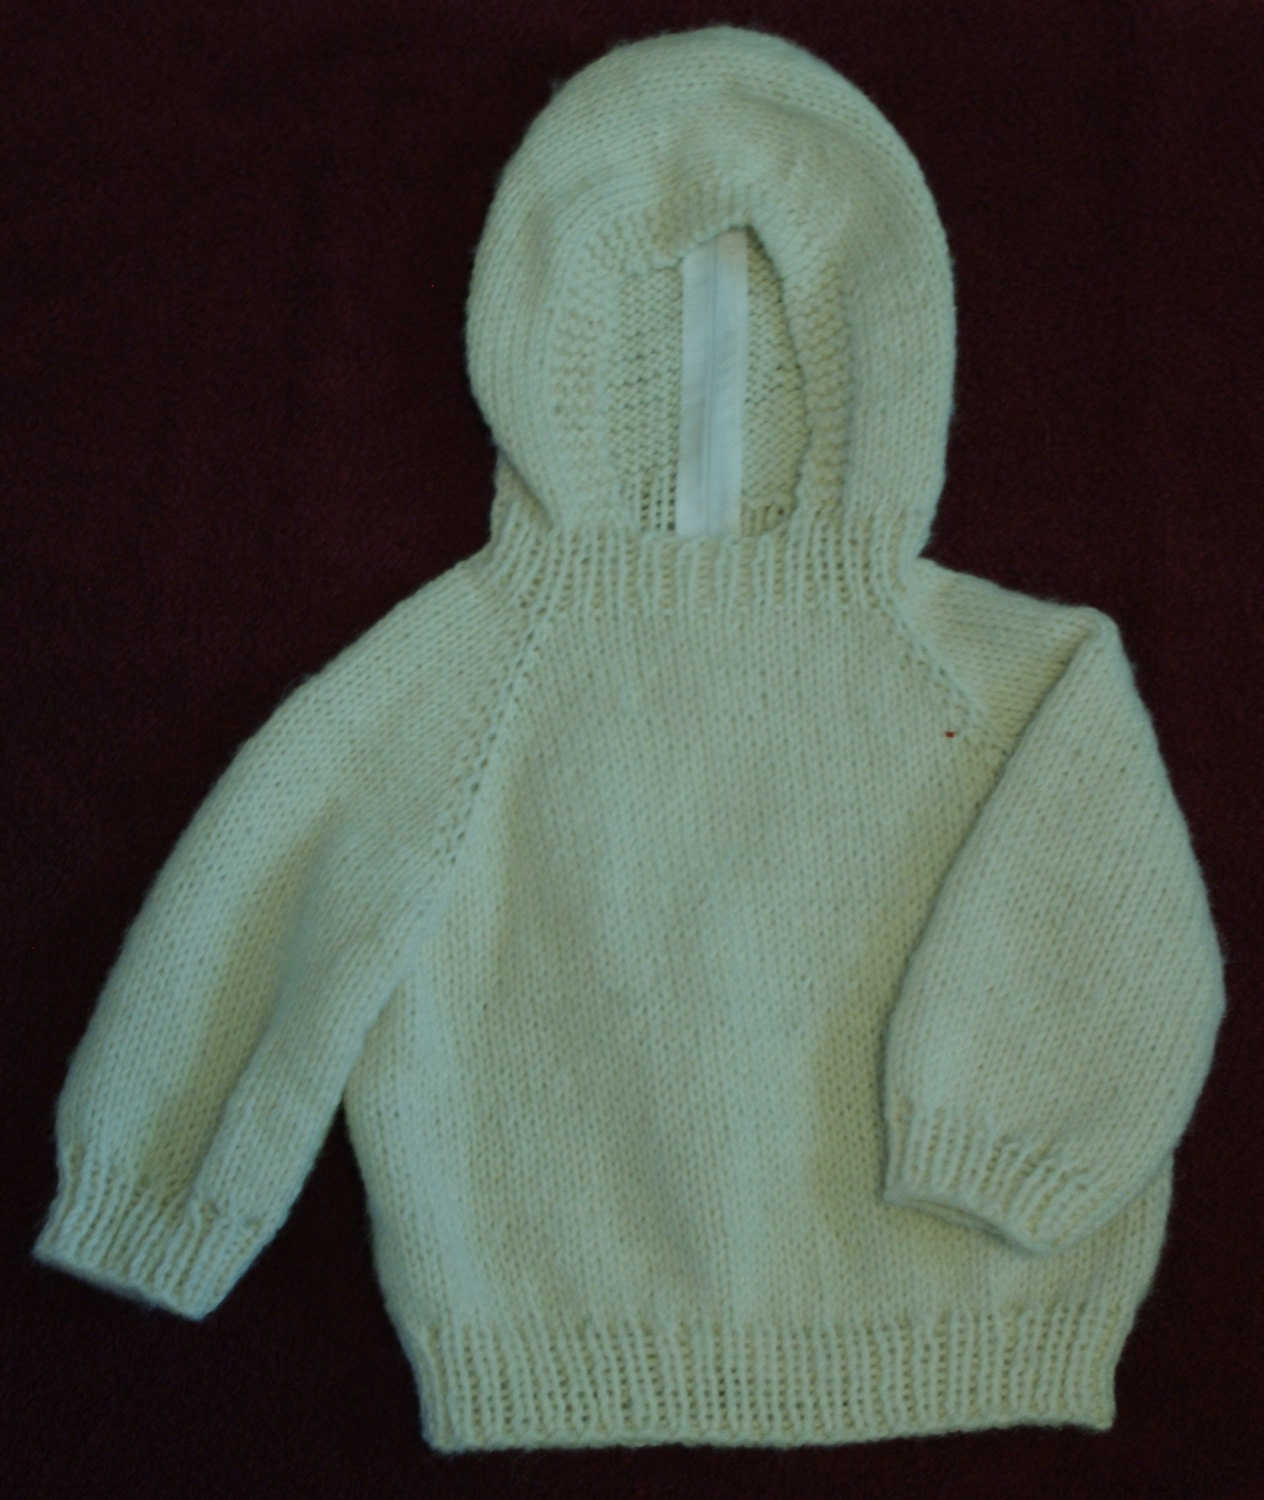 Knitting Pattern For Baby Sweater With Zipper In The Back : Knitted Hooded Baby Sweater with Back Zipper Off by SuzySpecials